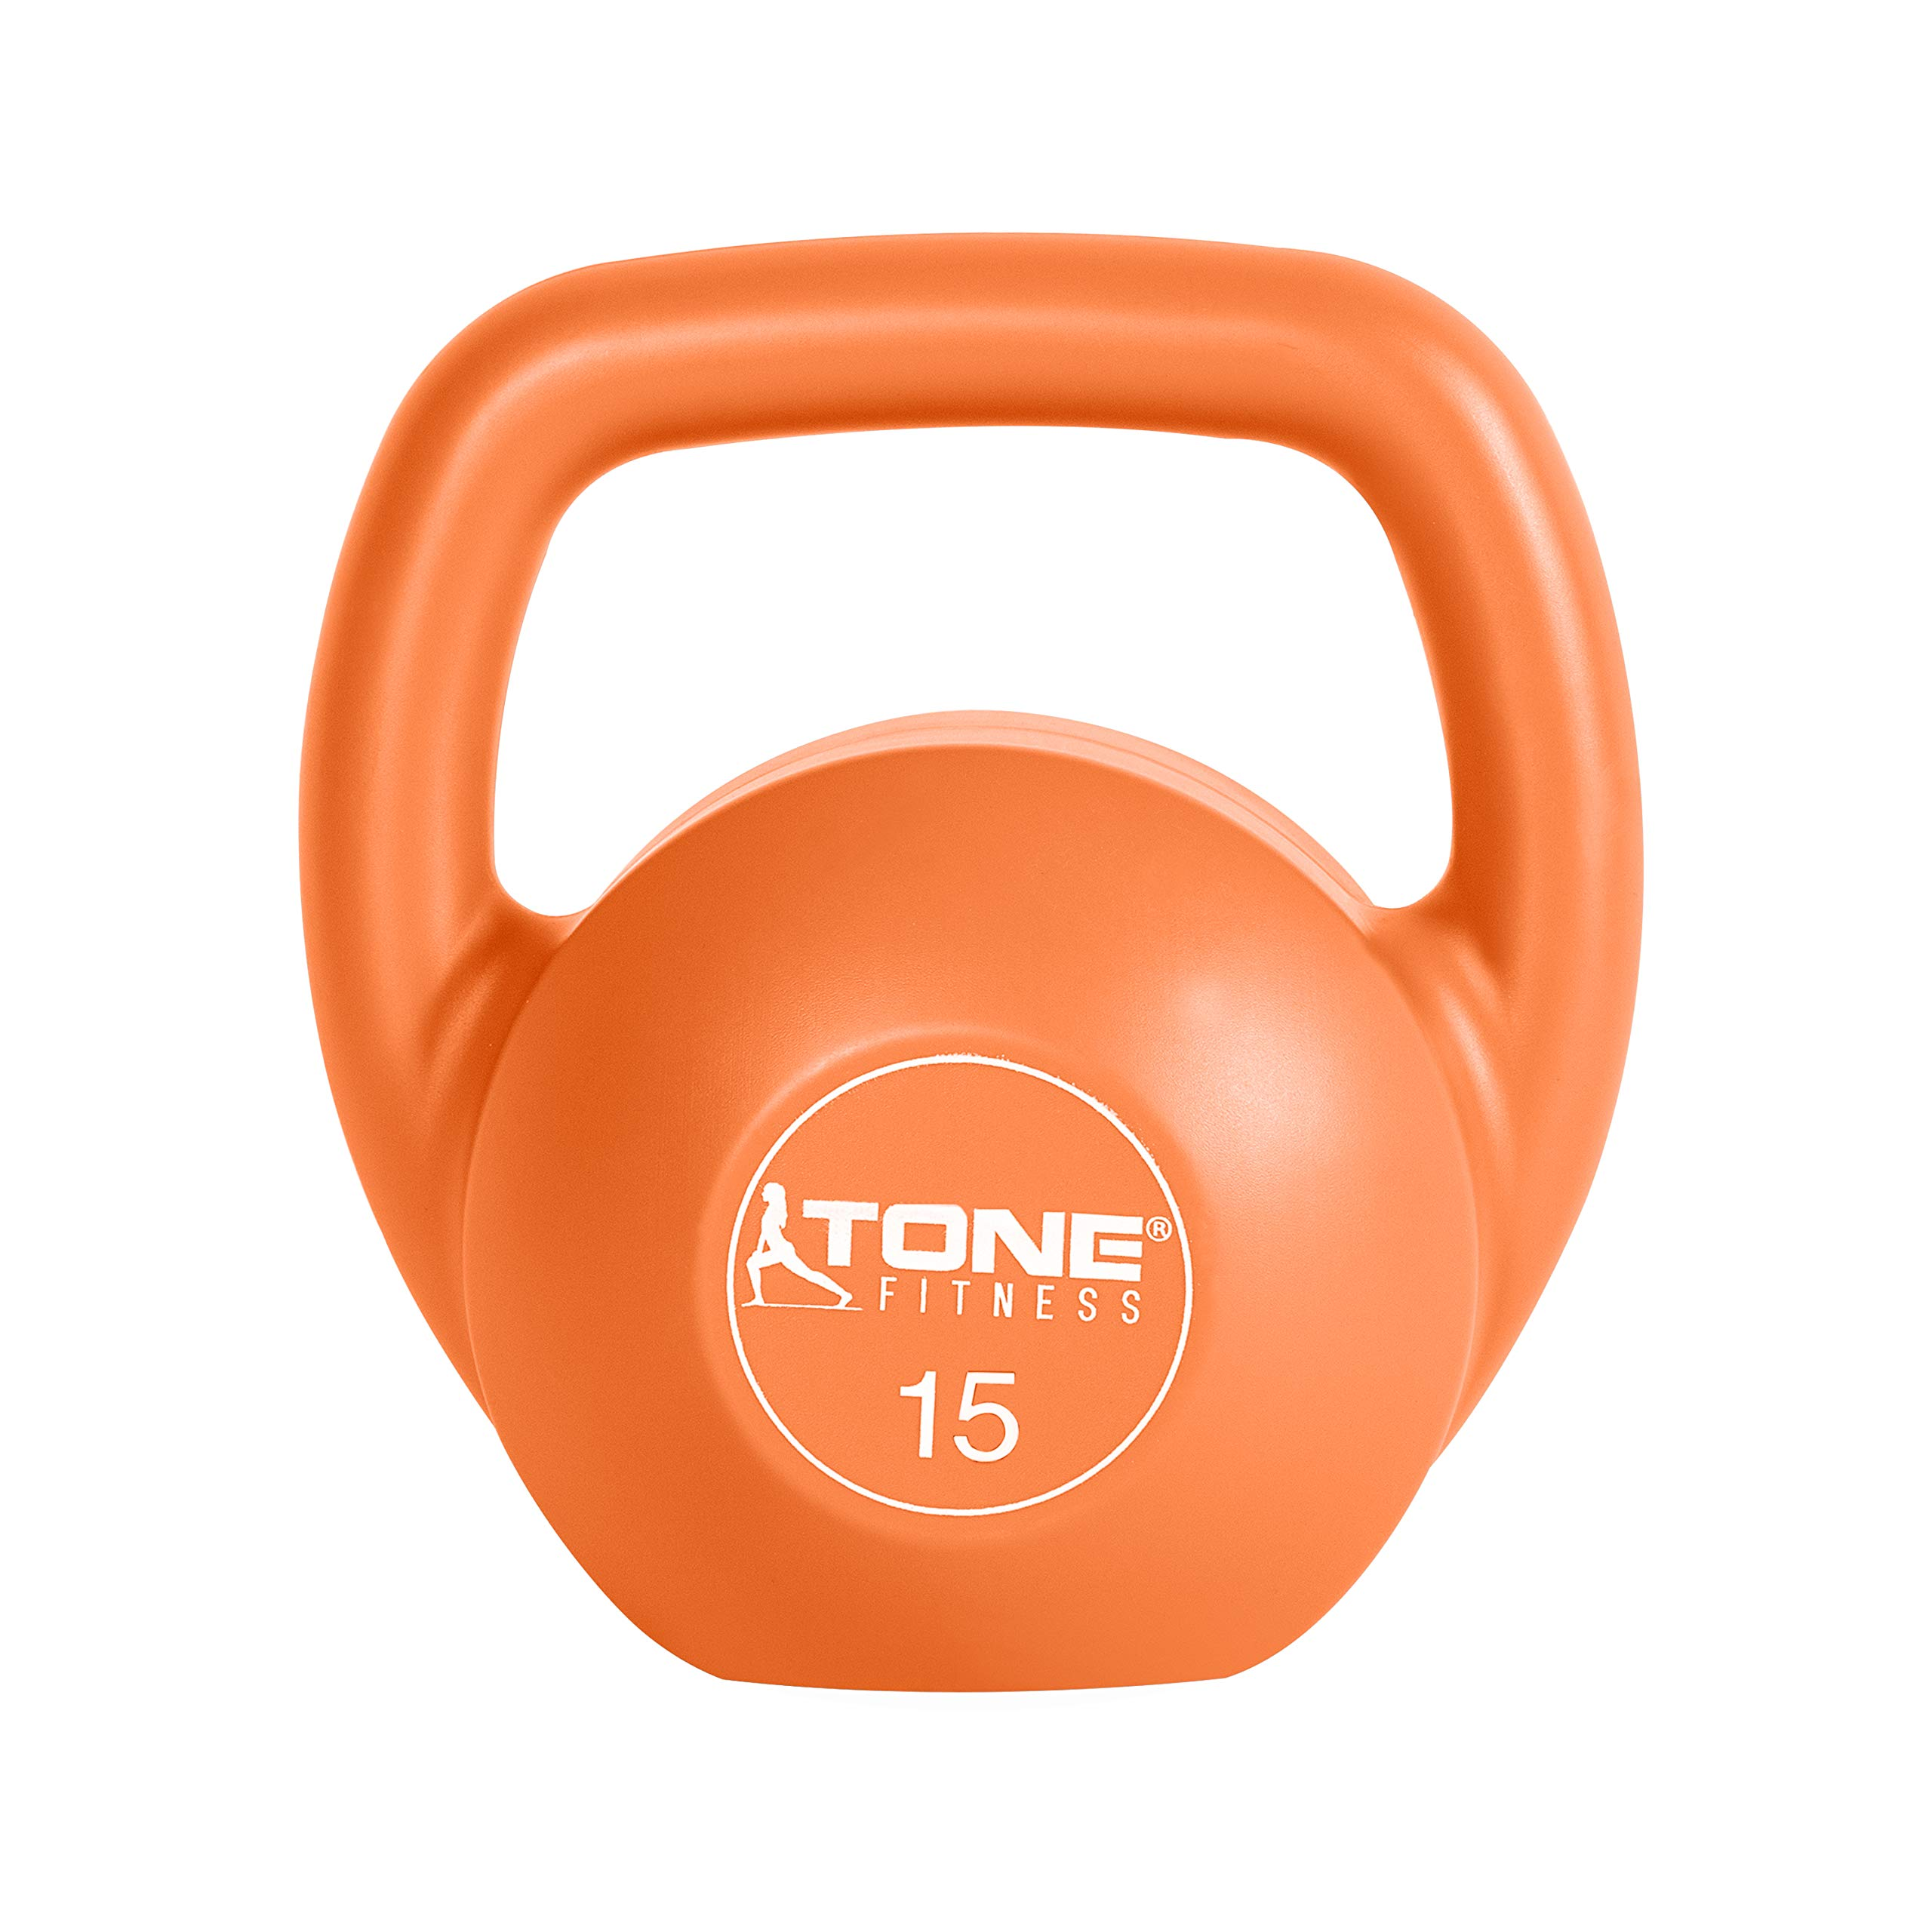 Tone Fitness Vinyl Kettlebell, 15-Pound, Orange by Tone Fitness (Image #1)